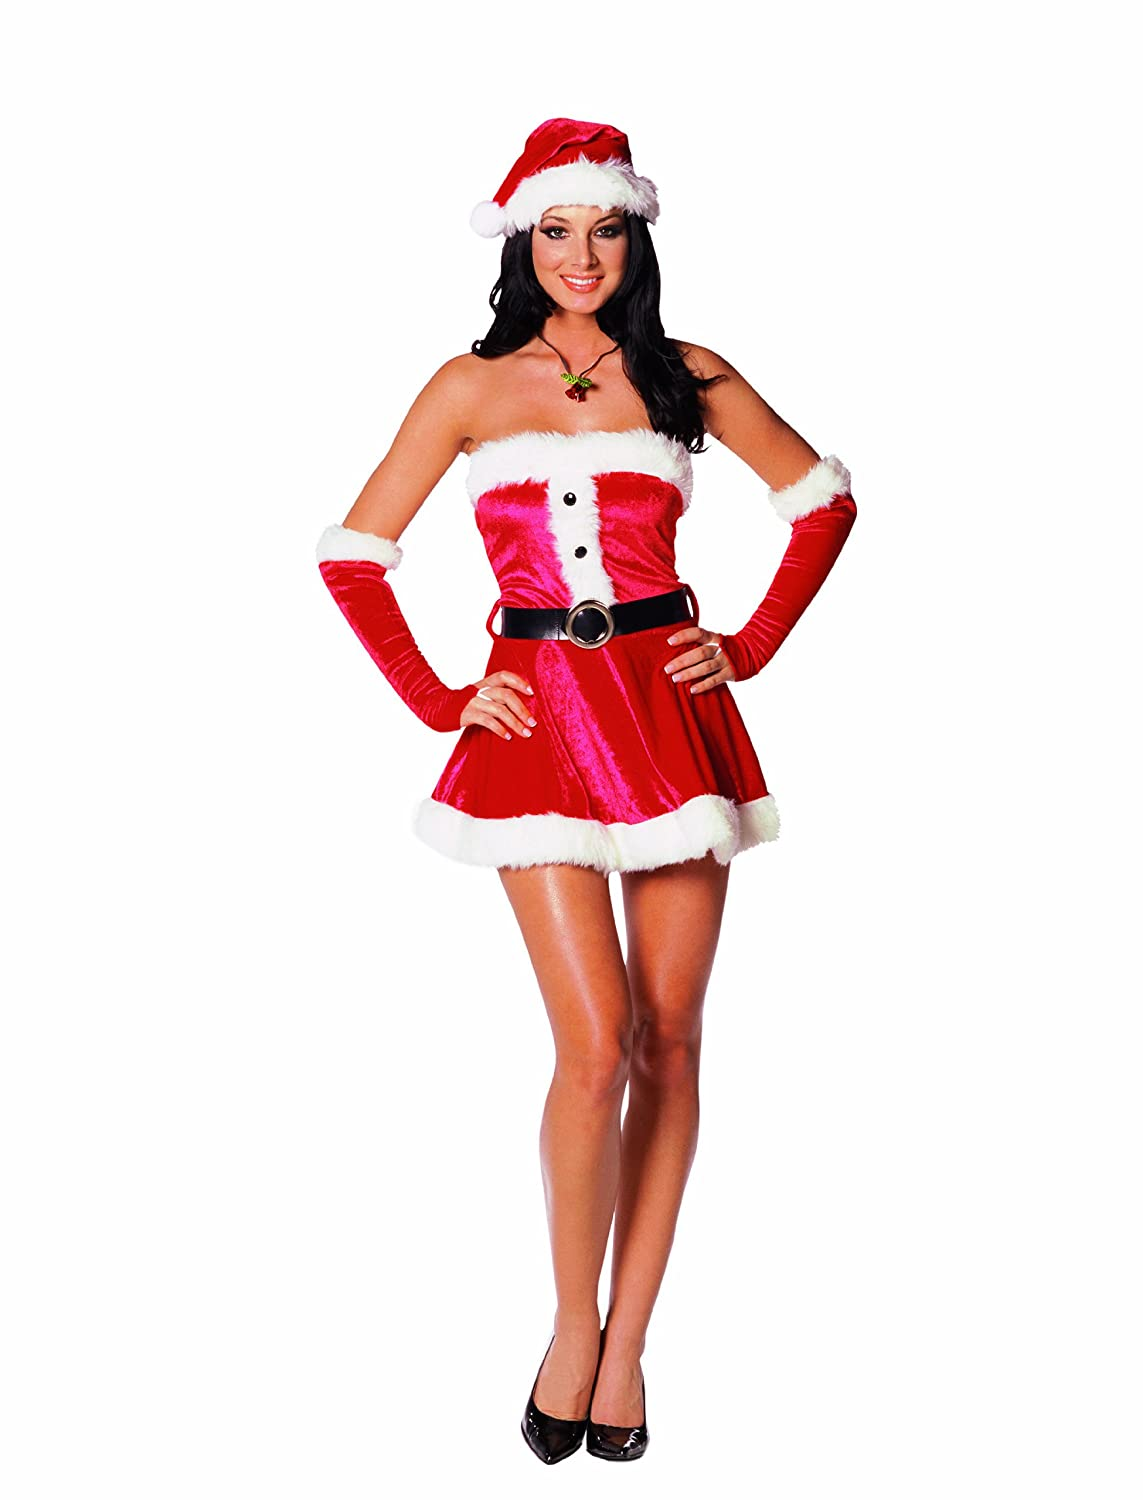 f23d0d71650a3 Amazon.com  Dreamgirl Women s Santa s Sweetie Costume  Clothing